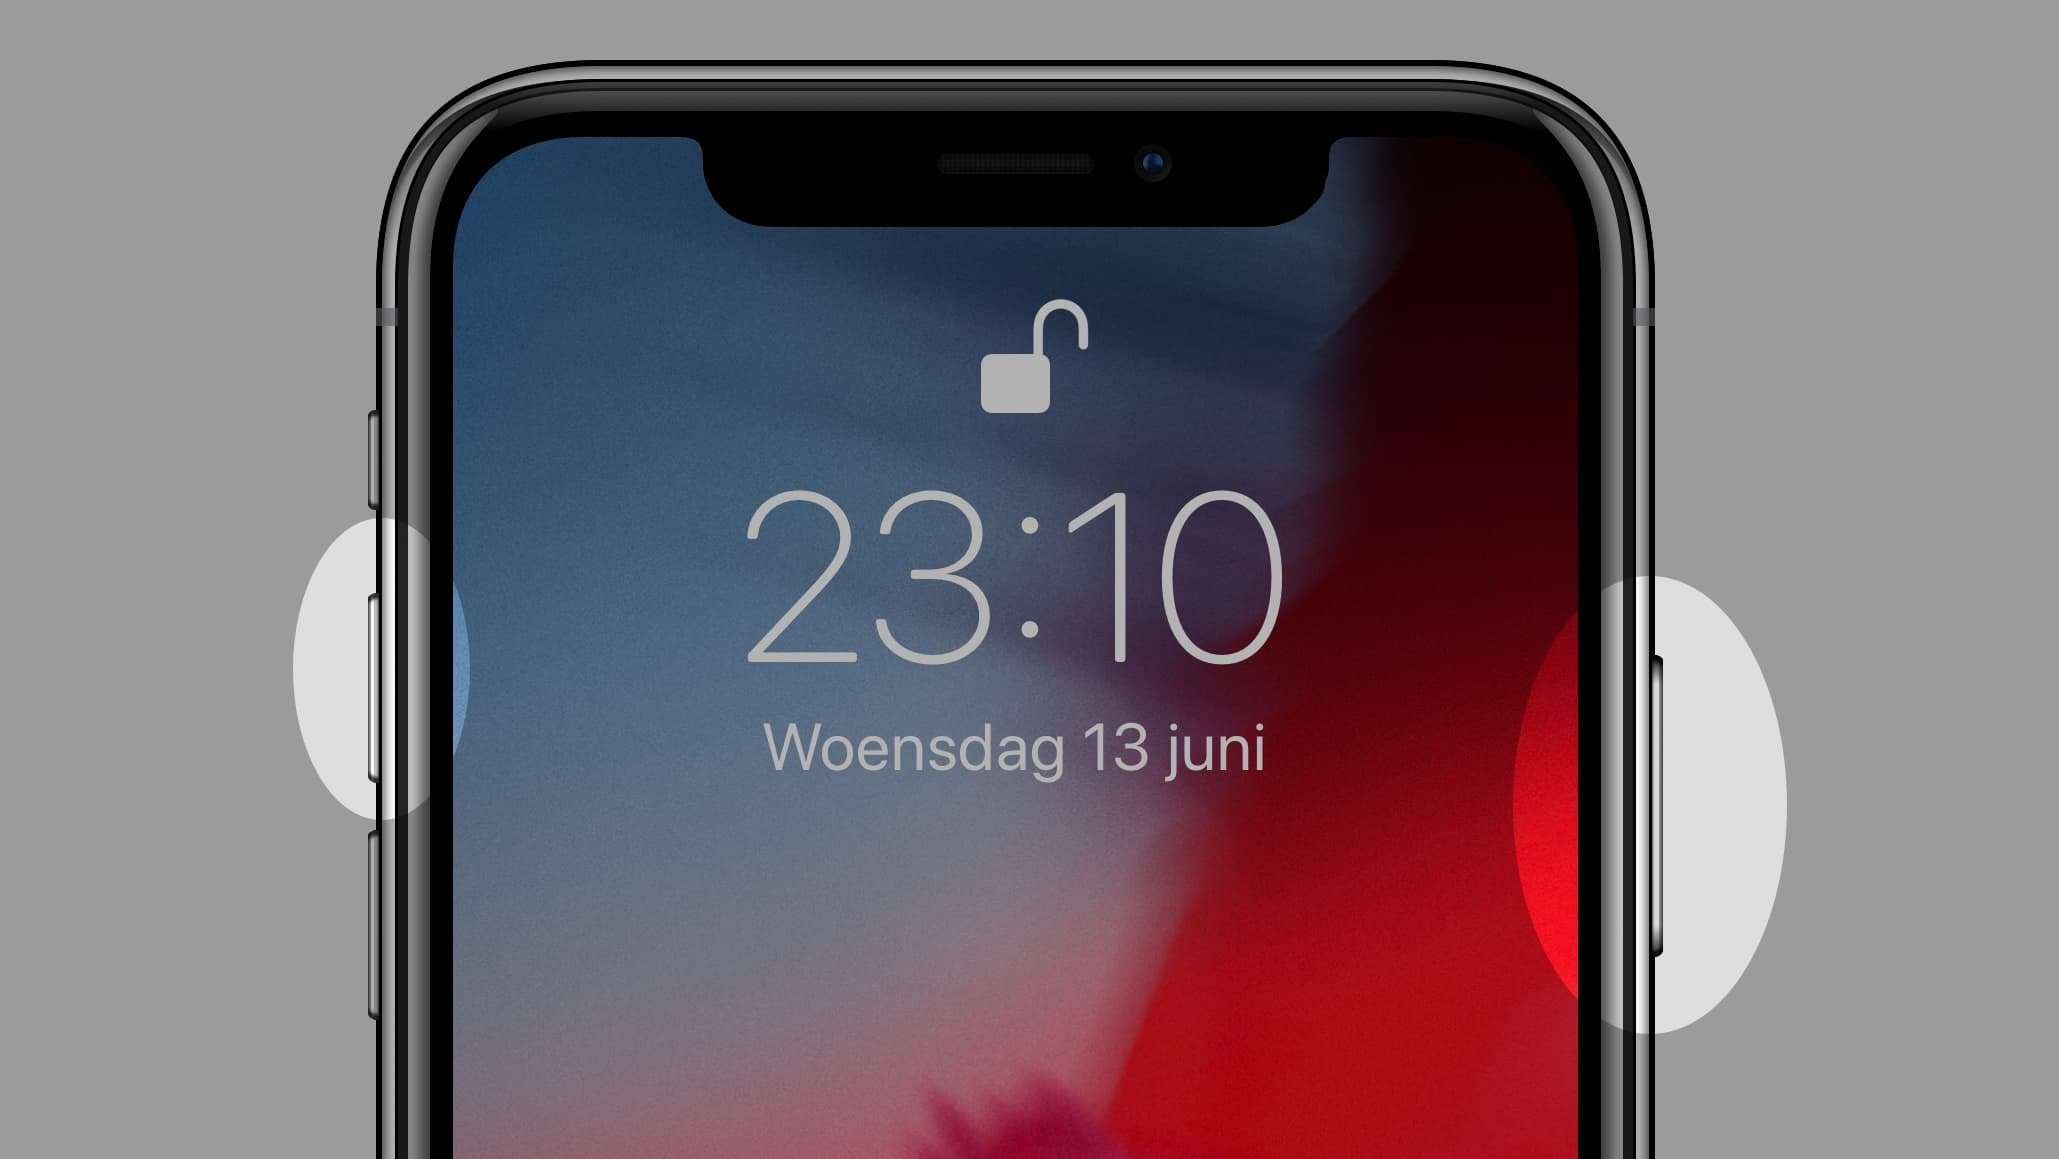 iOS 12 iphone x screenshot maken